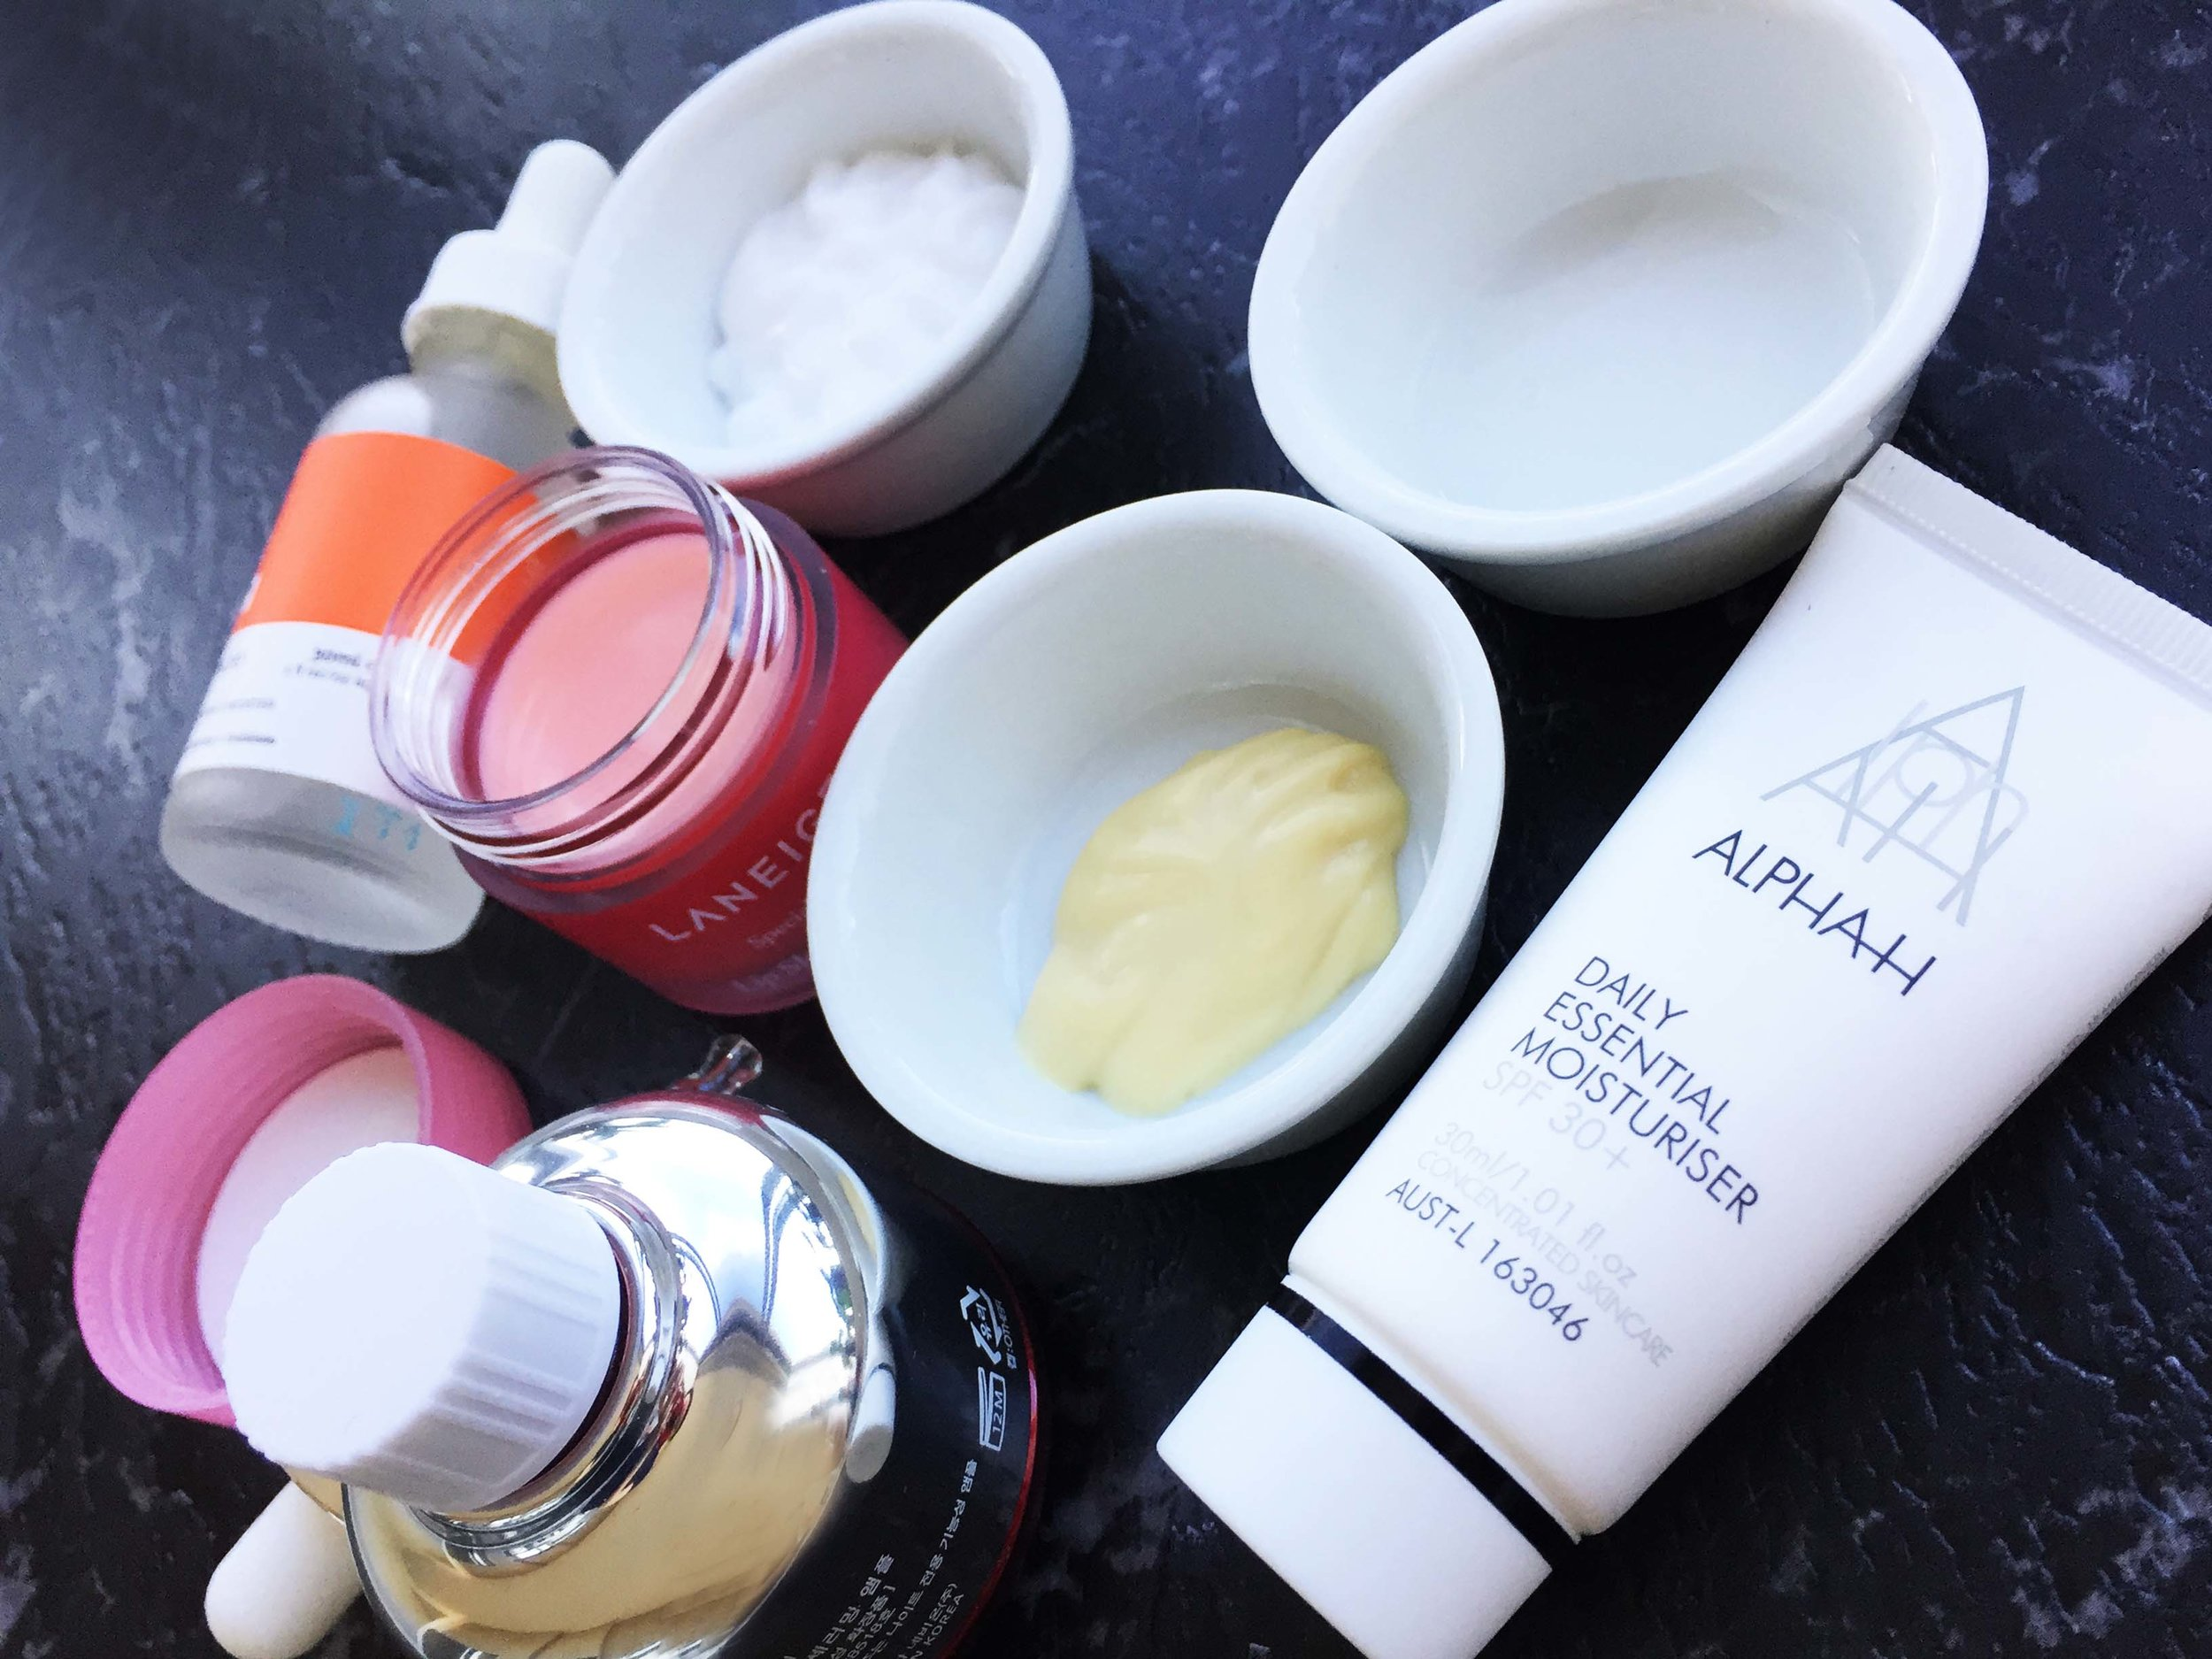 My product Usage; Cleanser, Moisturiser, Glycolic Lotion